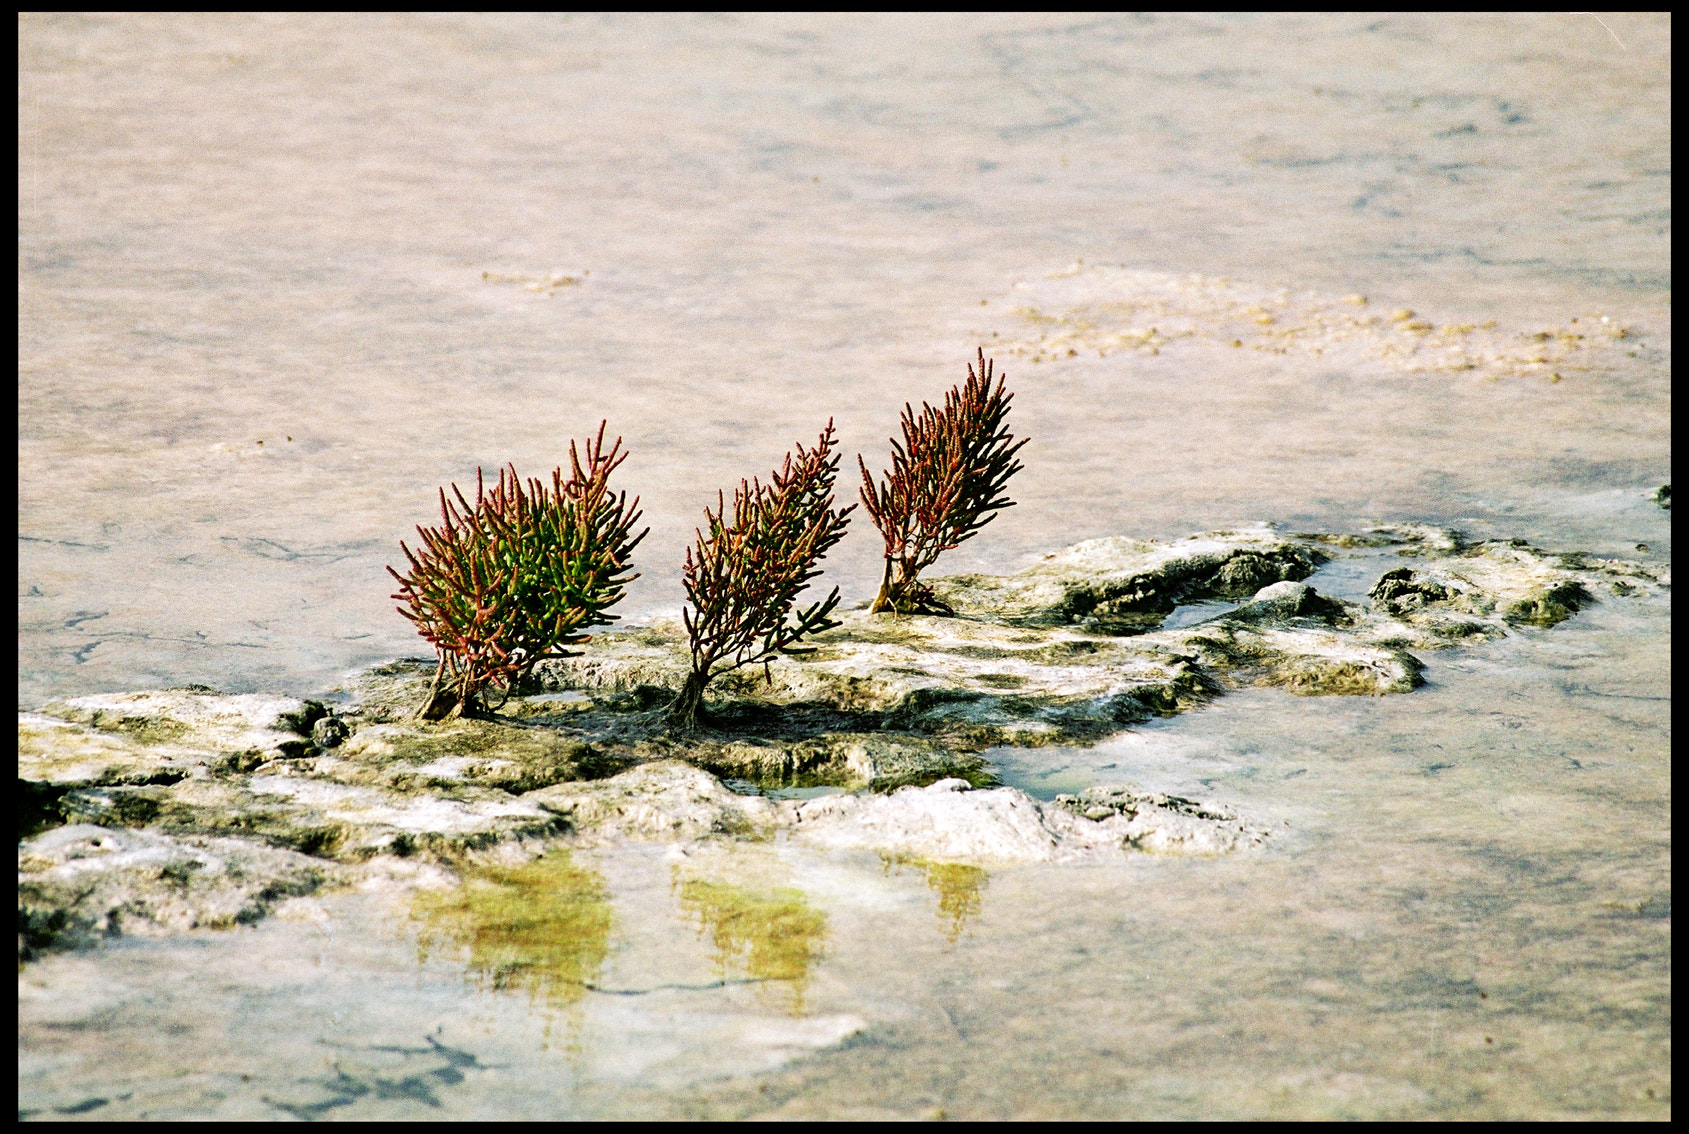 Photograph Les salines 10 by Gilbert Janssens on 500px